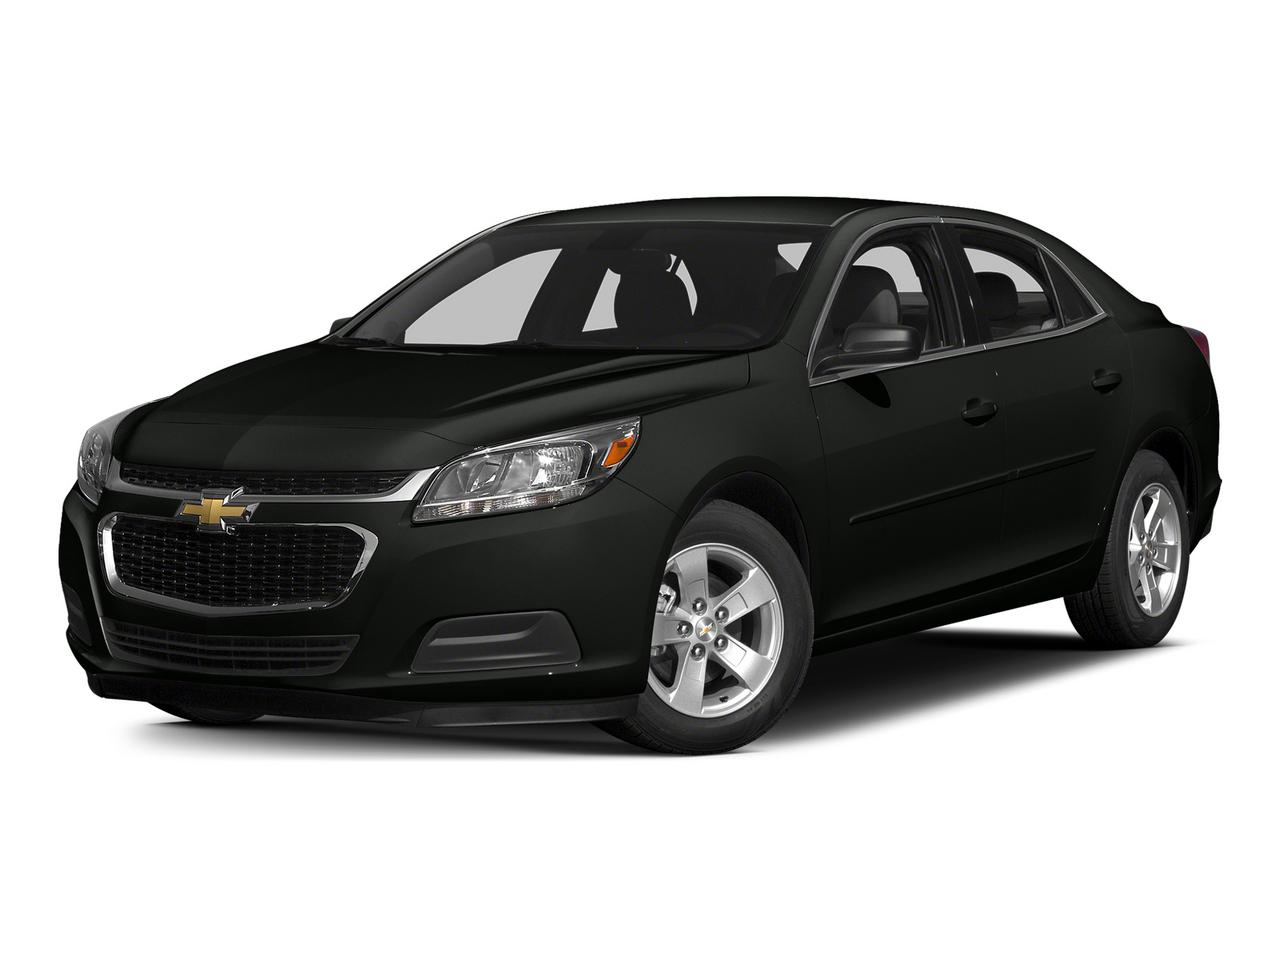 2015 Chevrolet Malibu Vehicle Photo in Vincennes, IN 47591